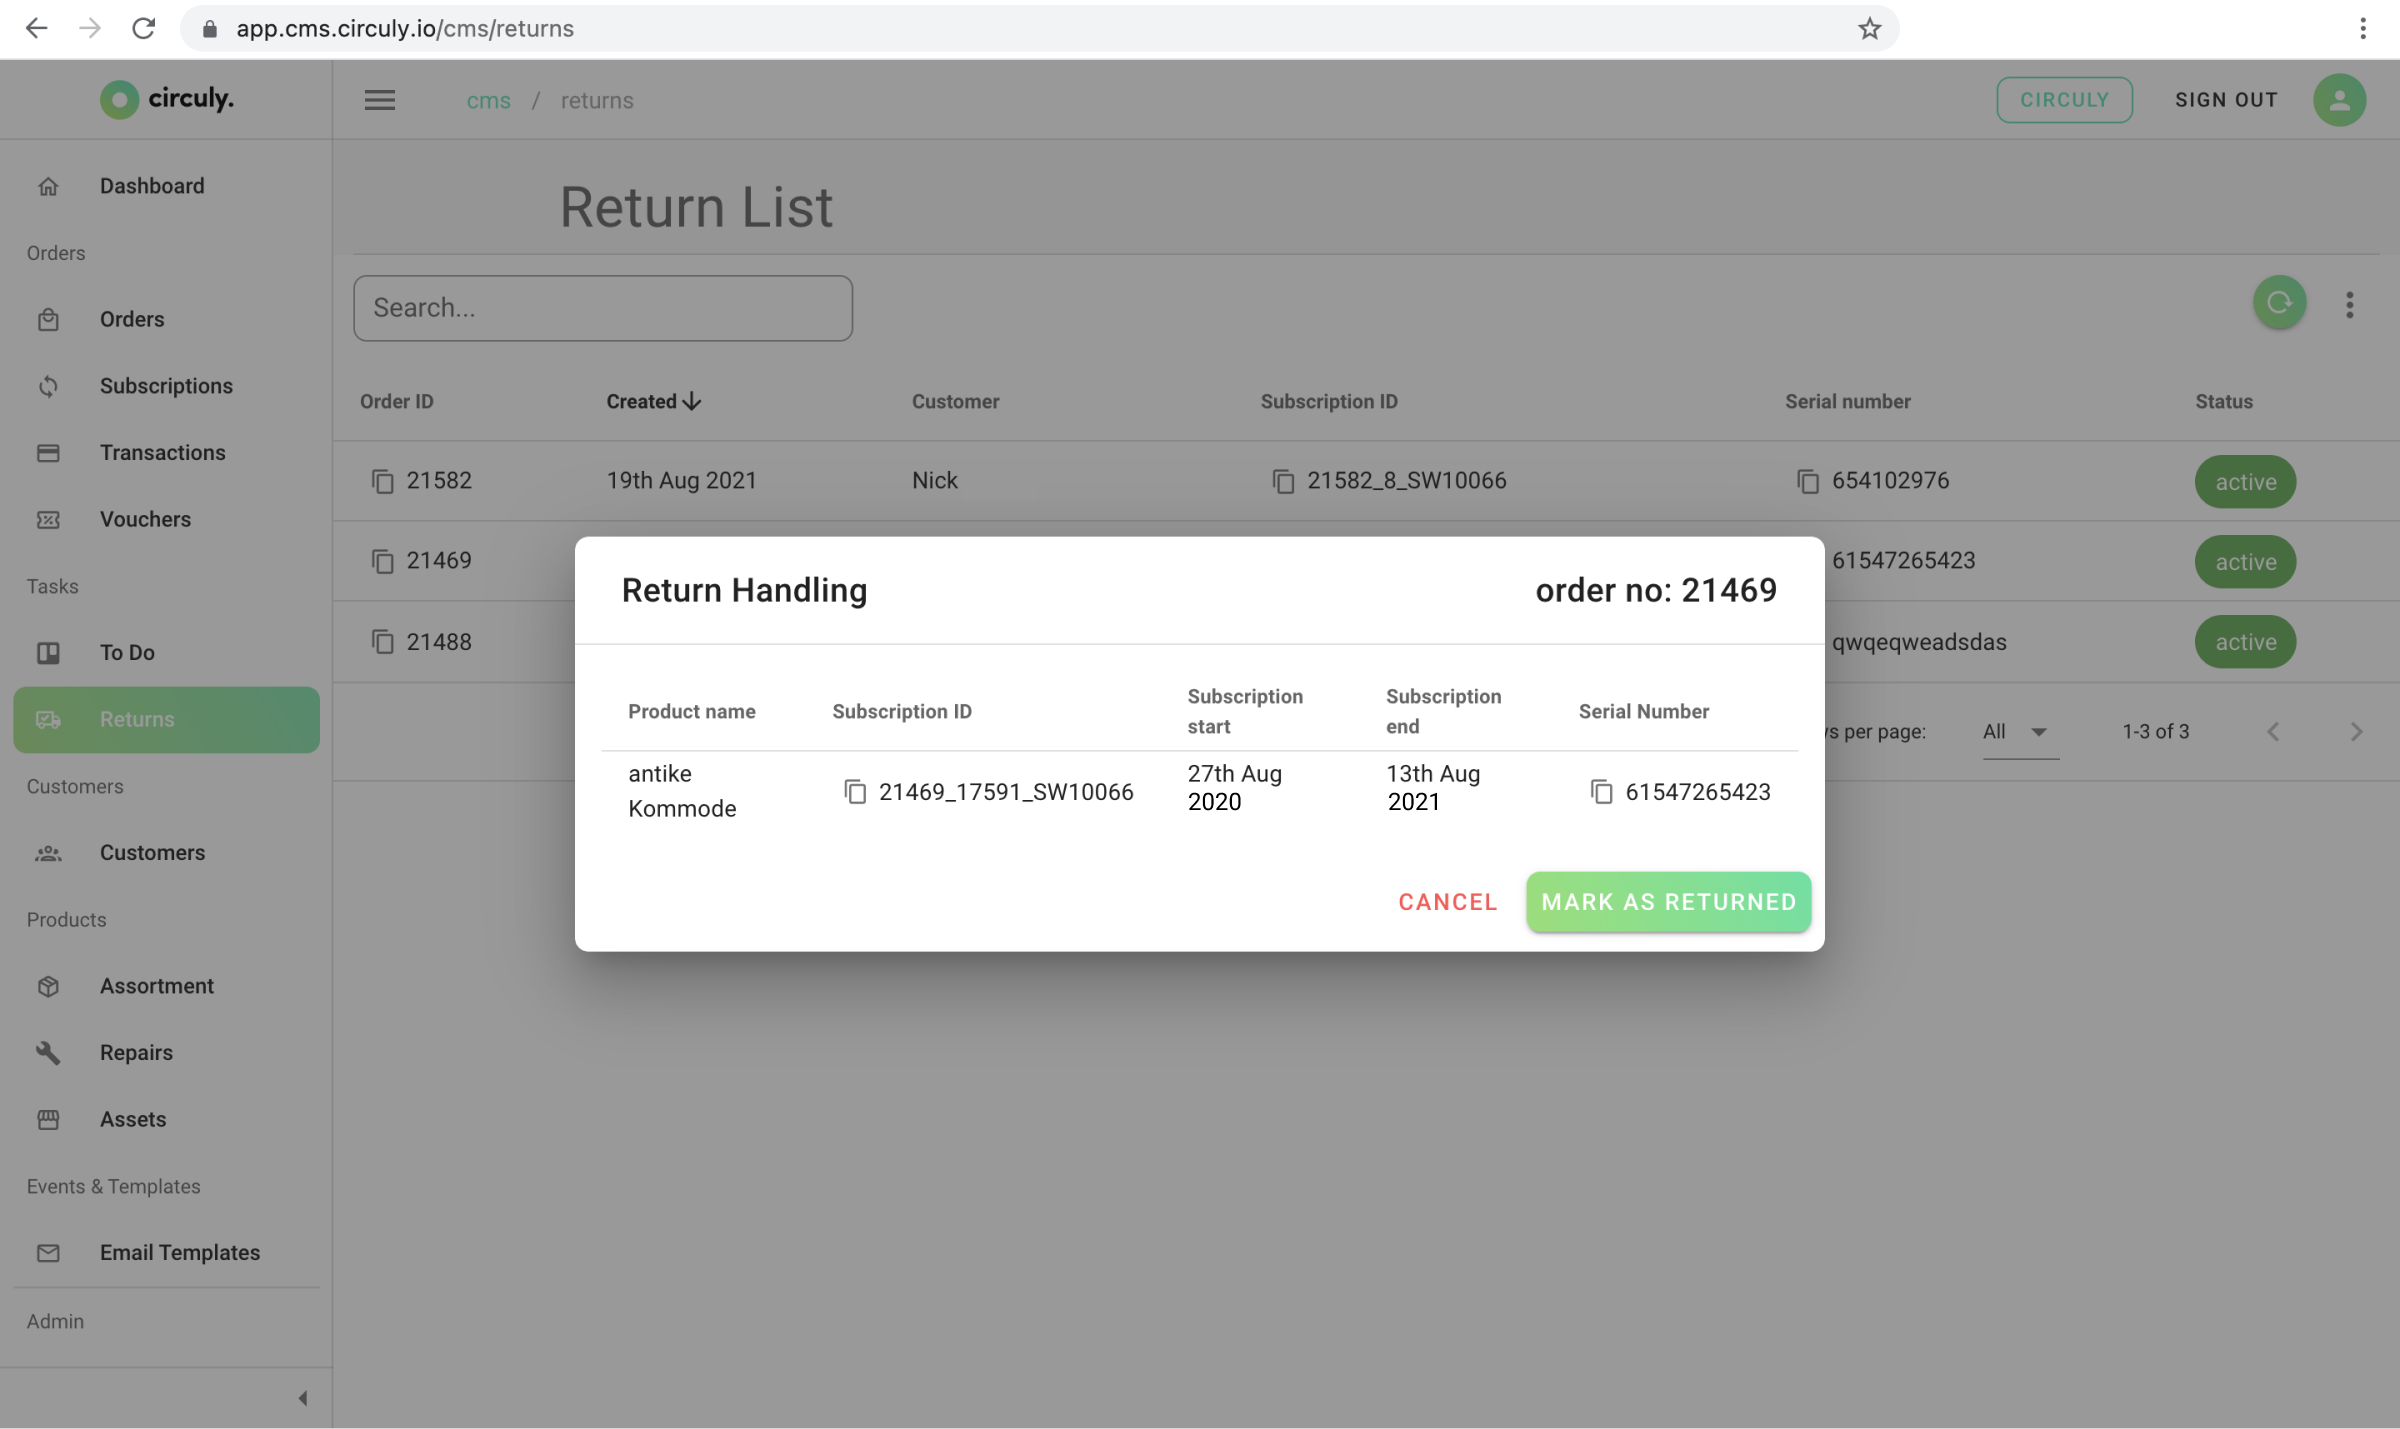 circuly Subscription Management Software